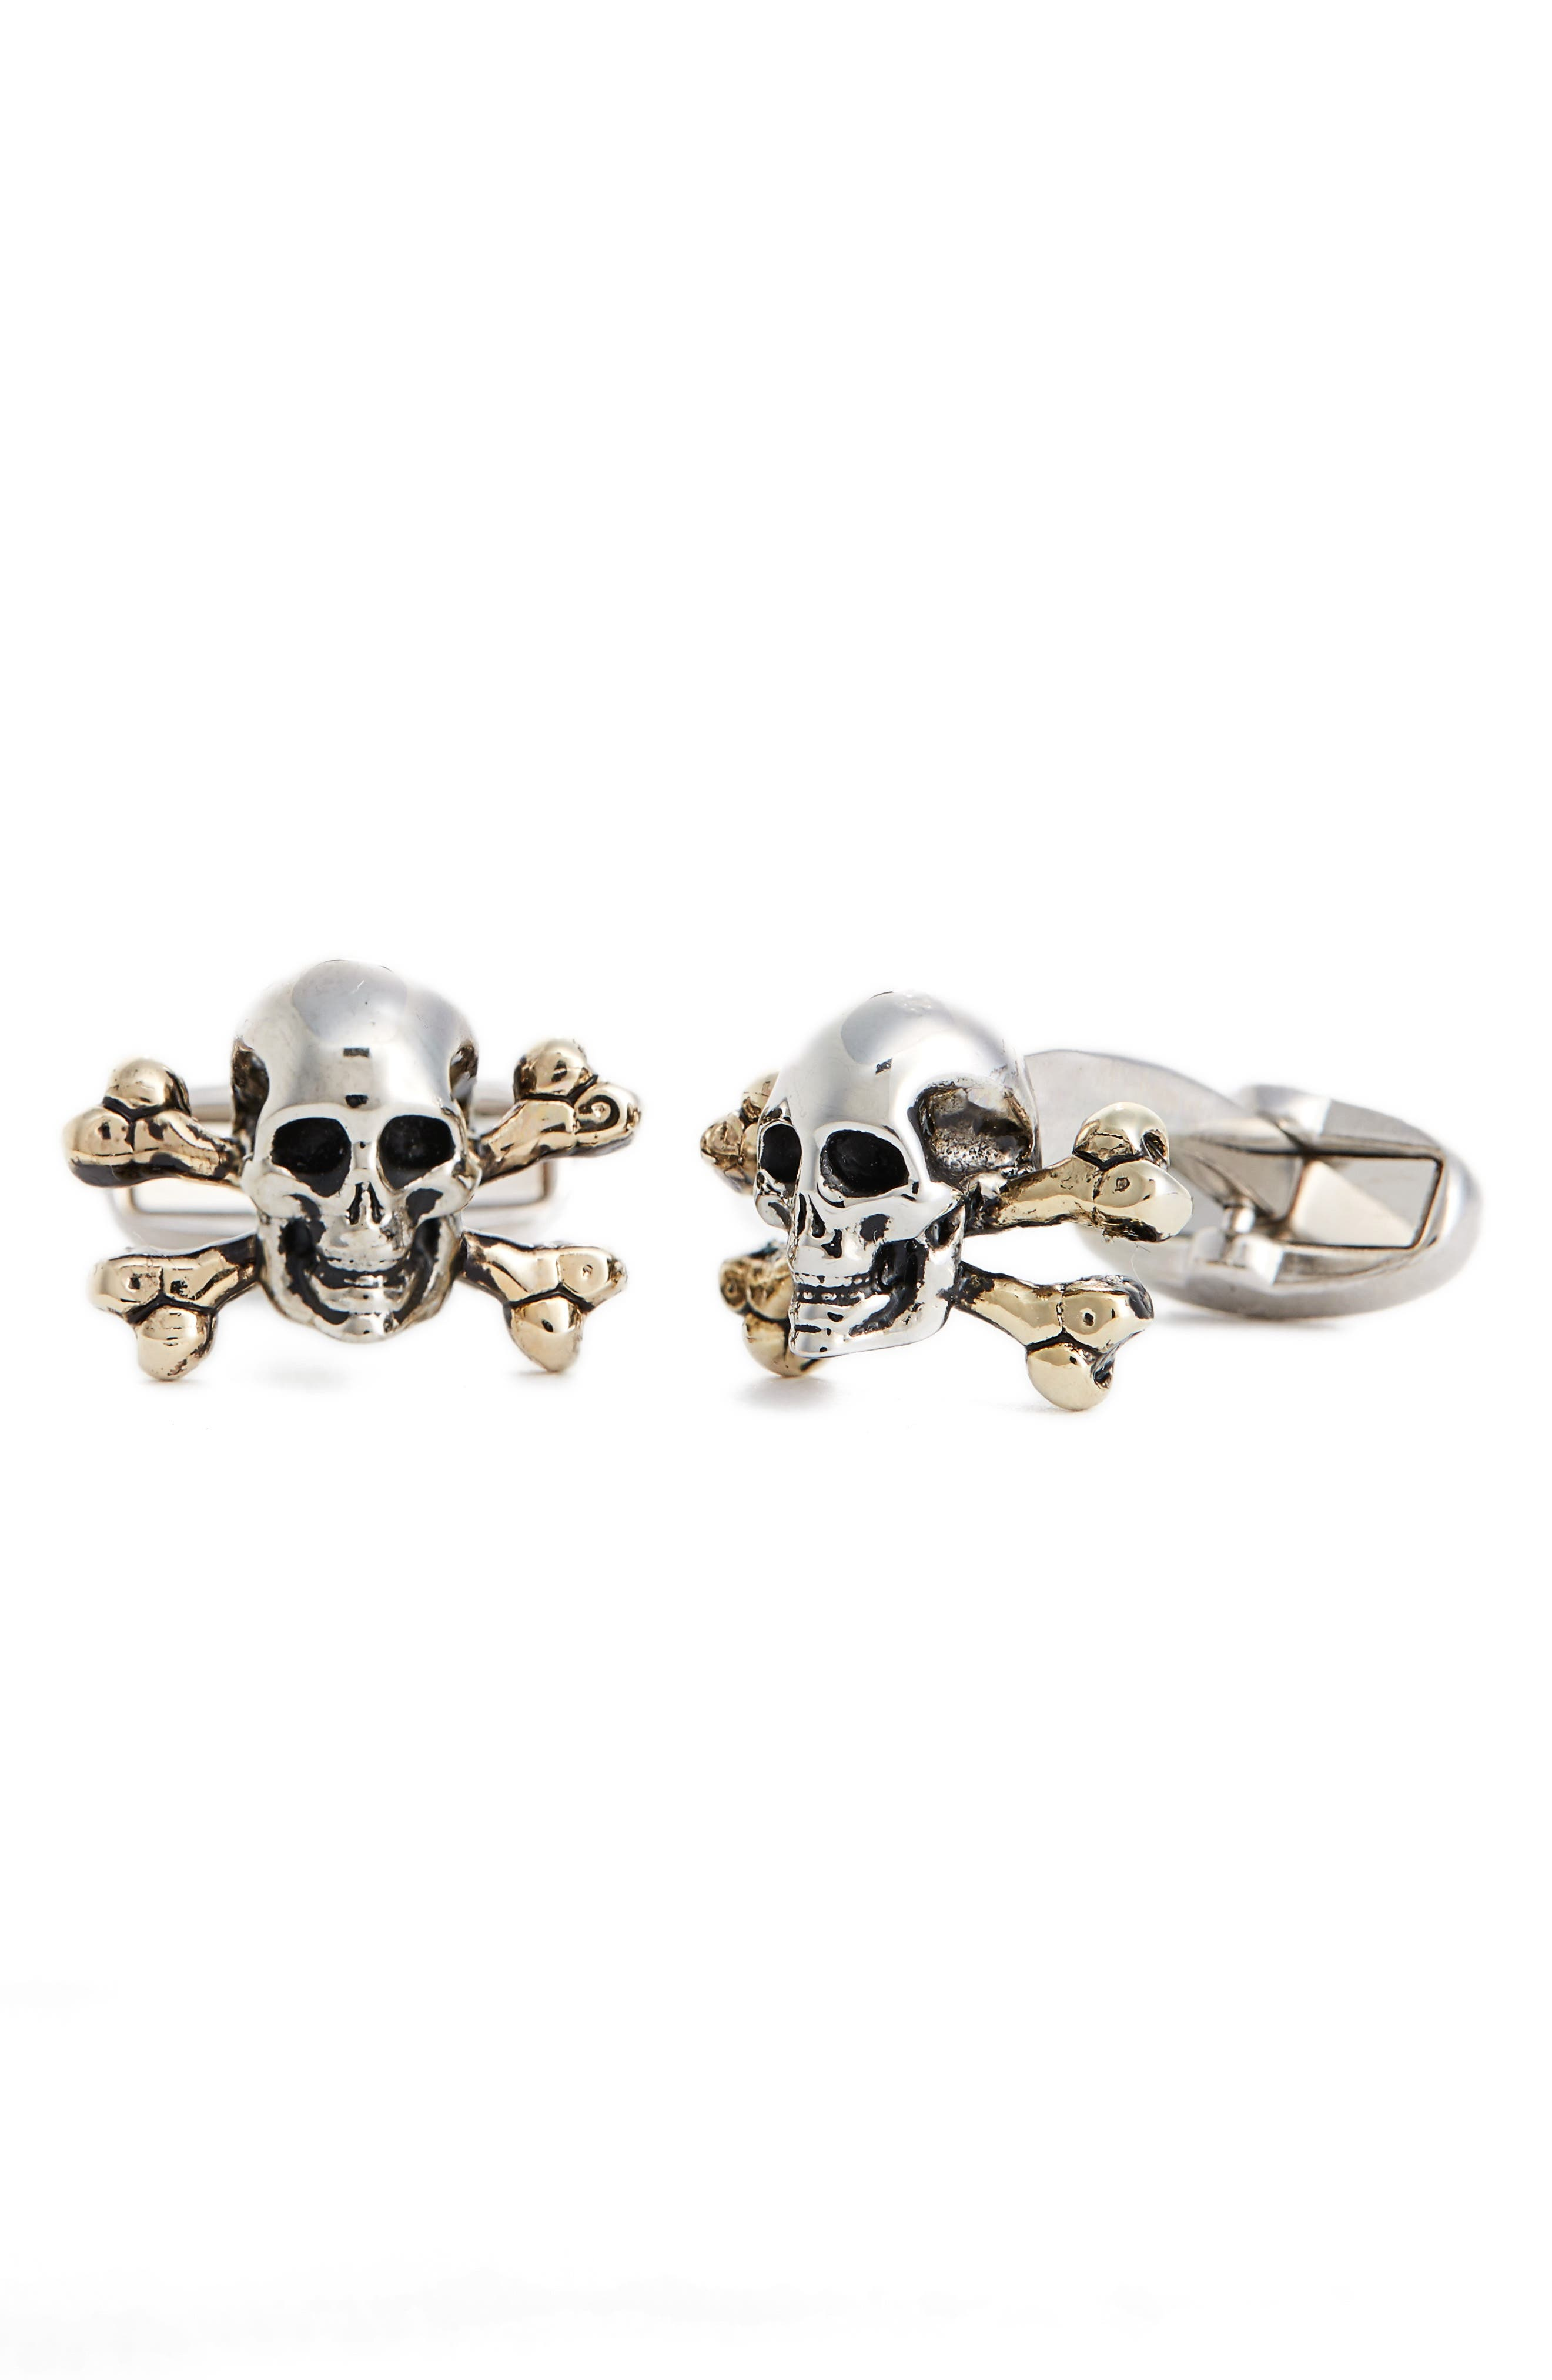 Alternate Image 1 Selected - Paul Smith Skull & Crossbones Cuff Links